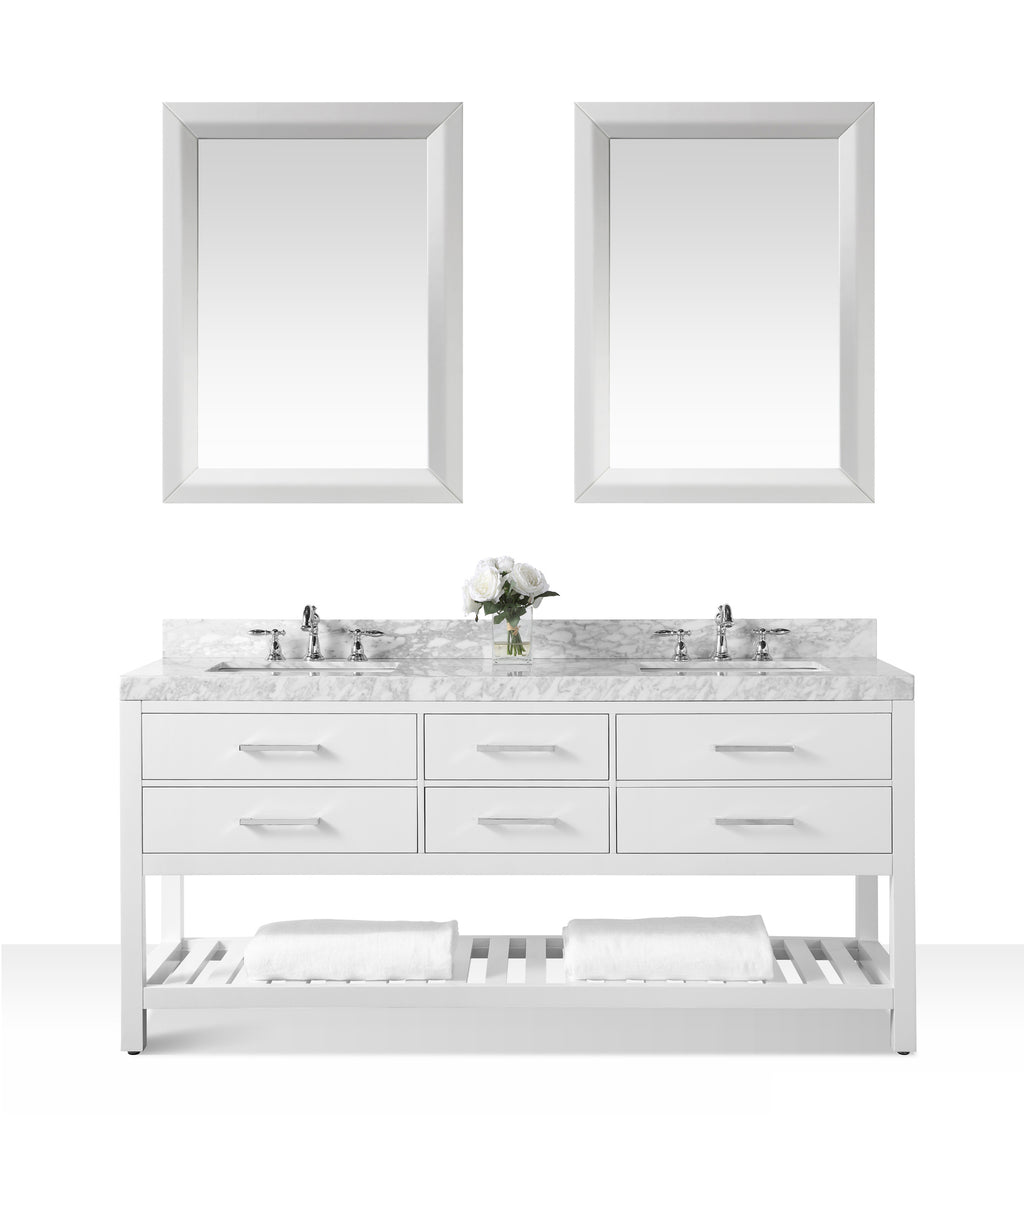 Elizabeth 72 in. Bath Vanity Set in White with 24 in. Mirror